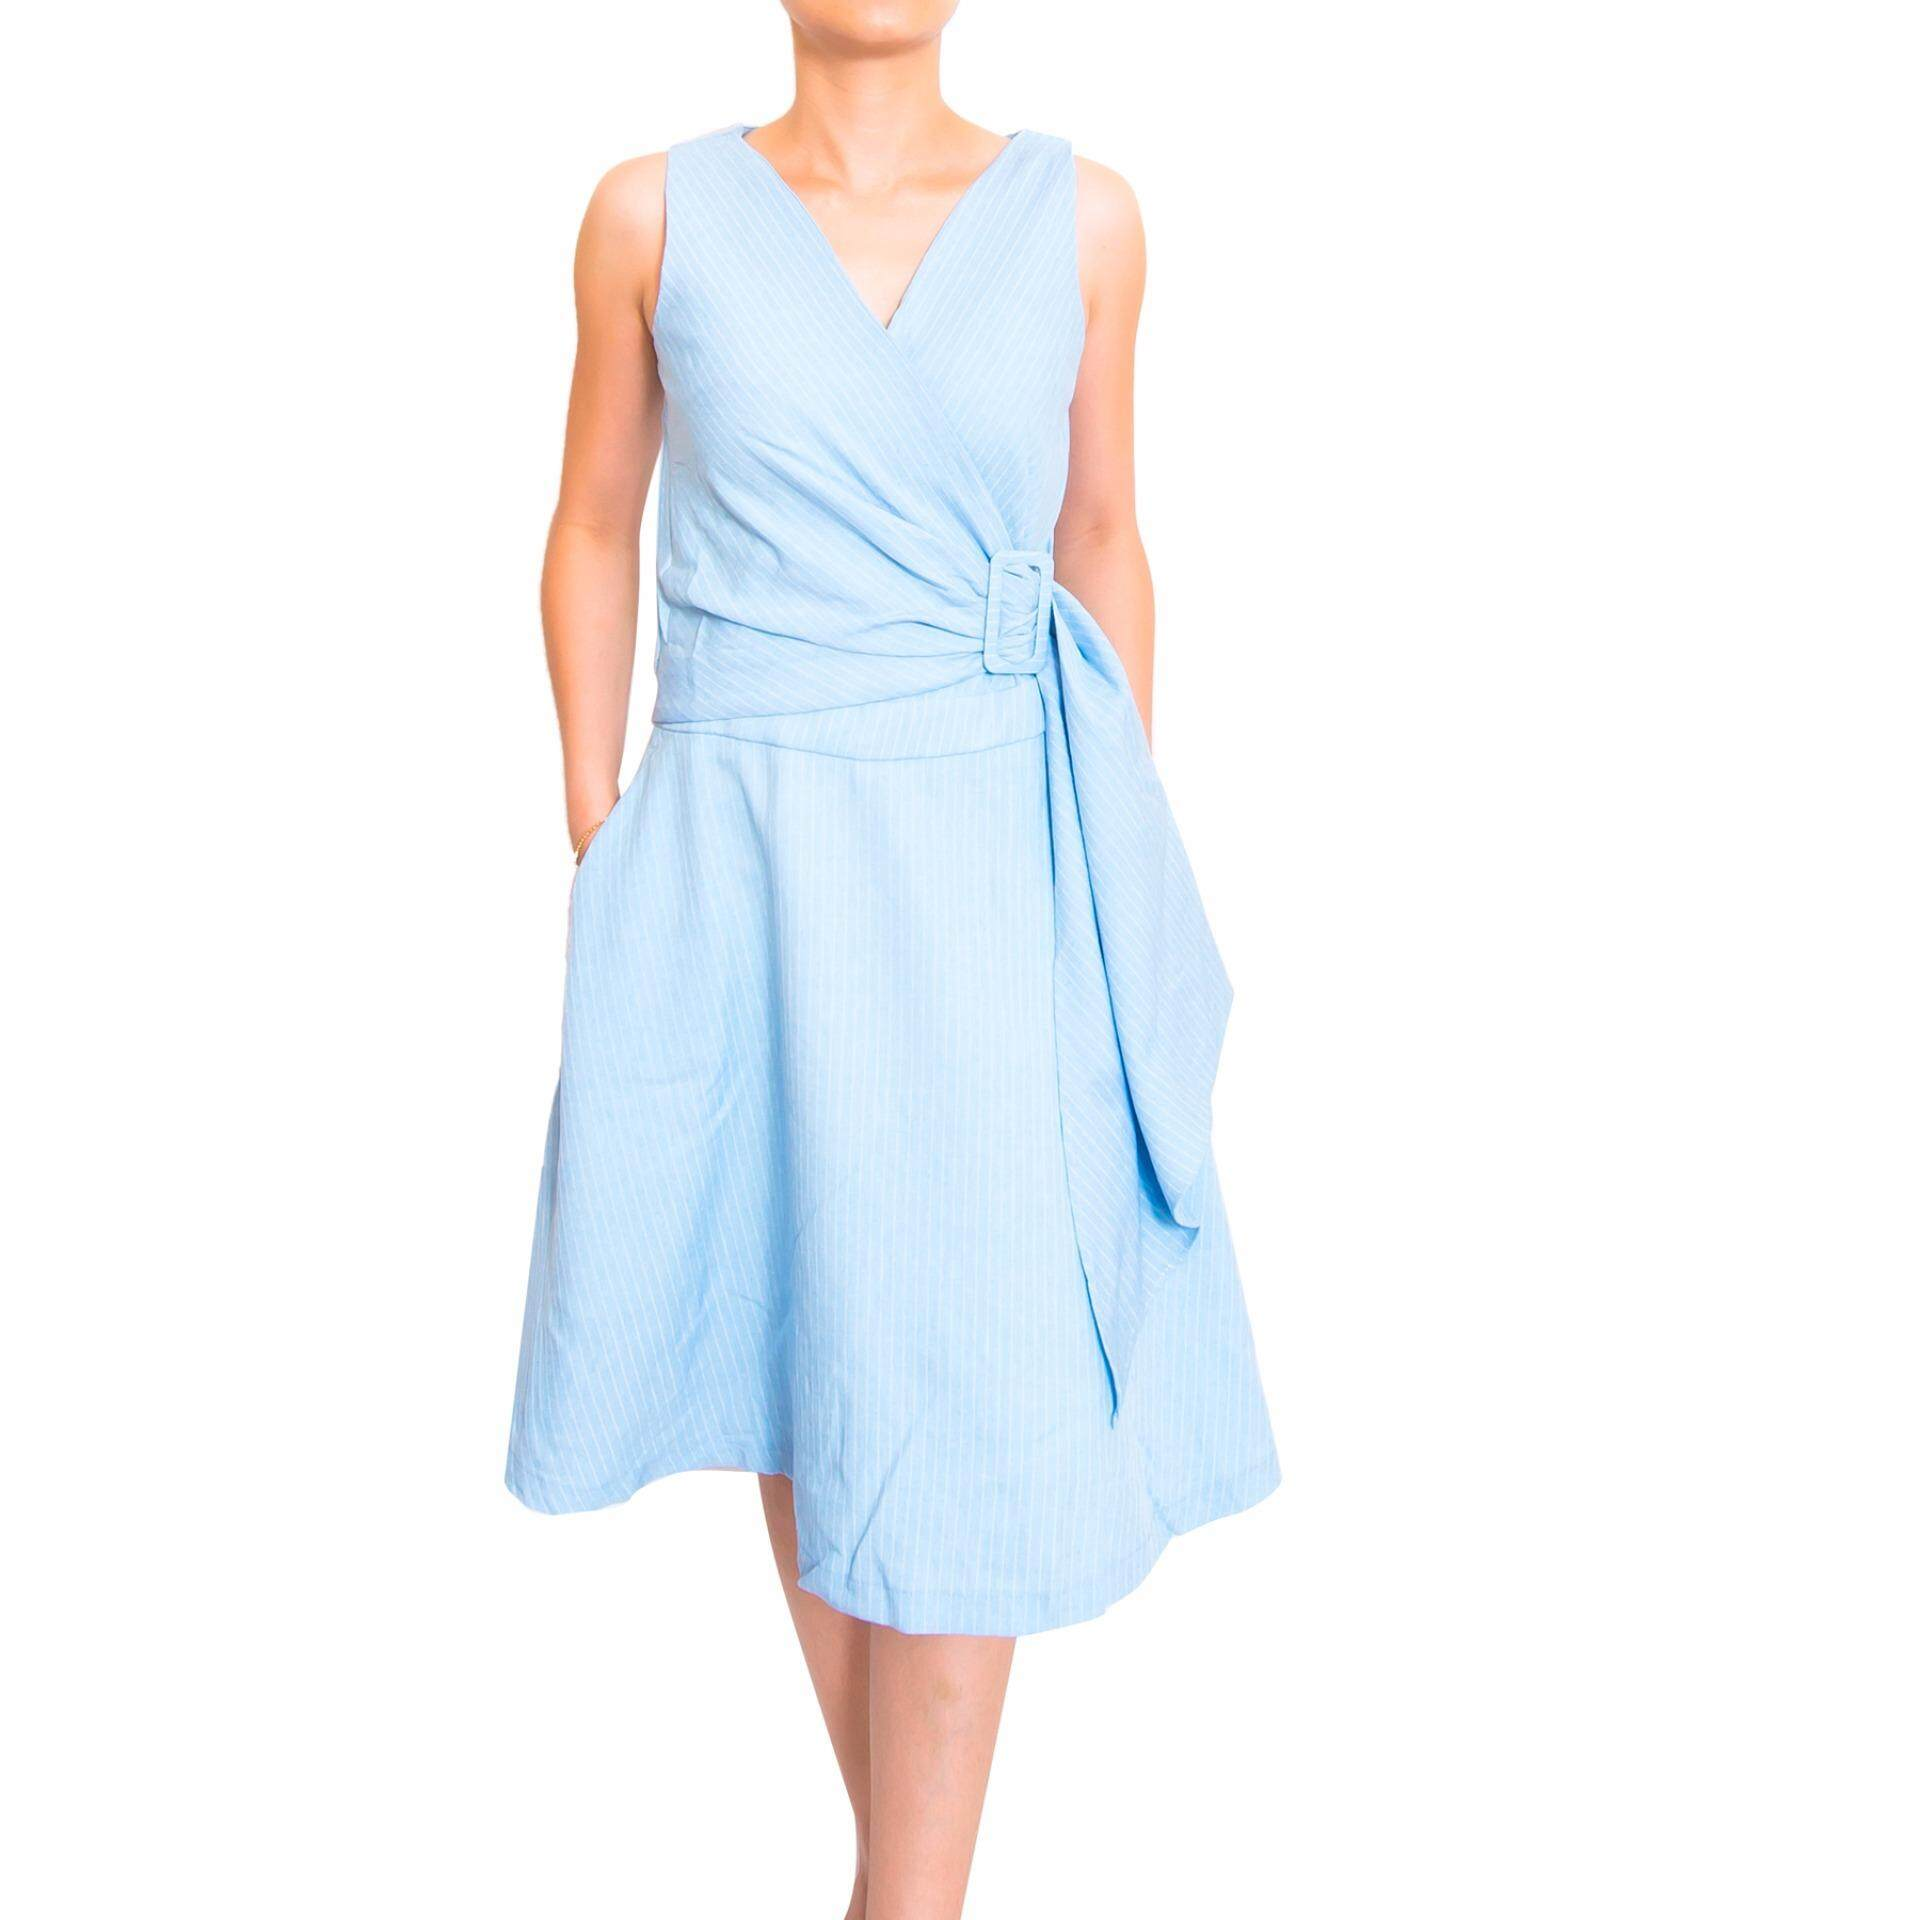 Kory & Lanza Lines with Unique Waist Deco Style Swing Dress in Blue